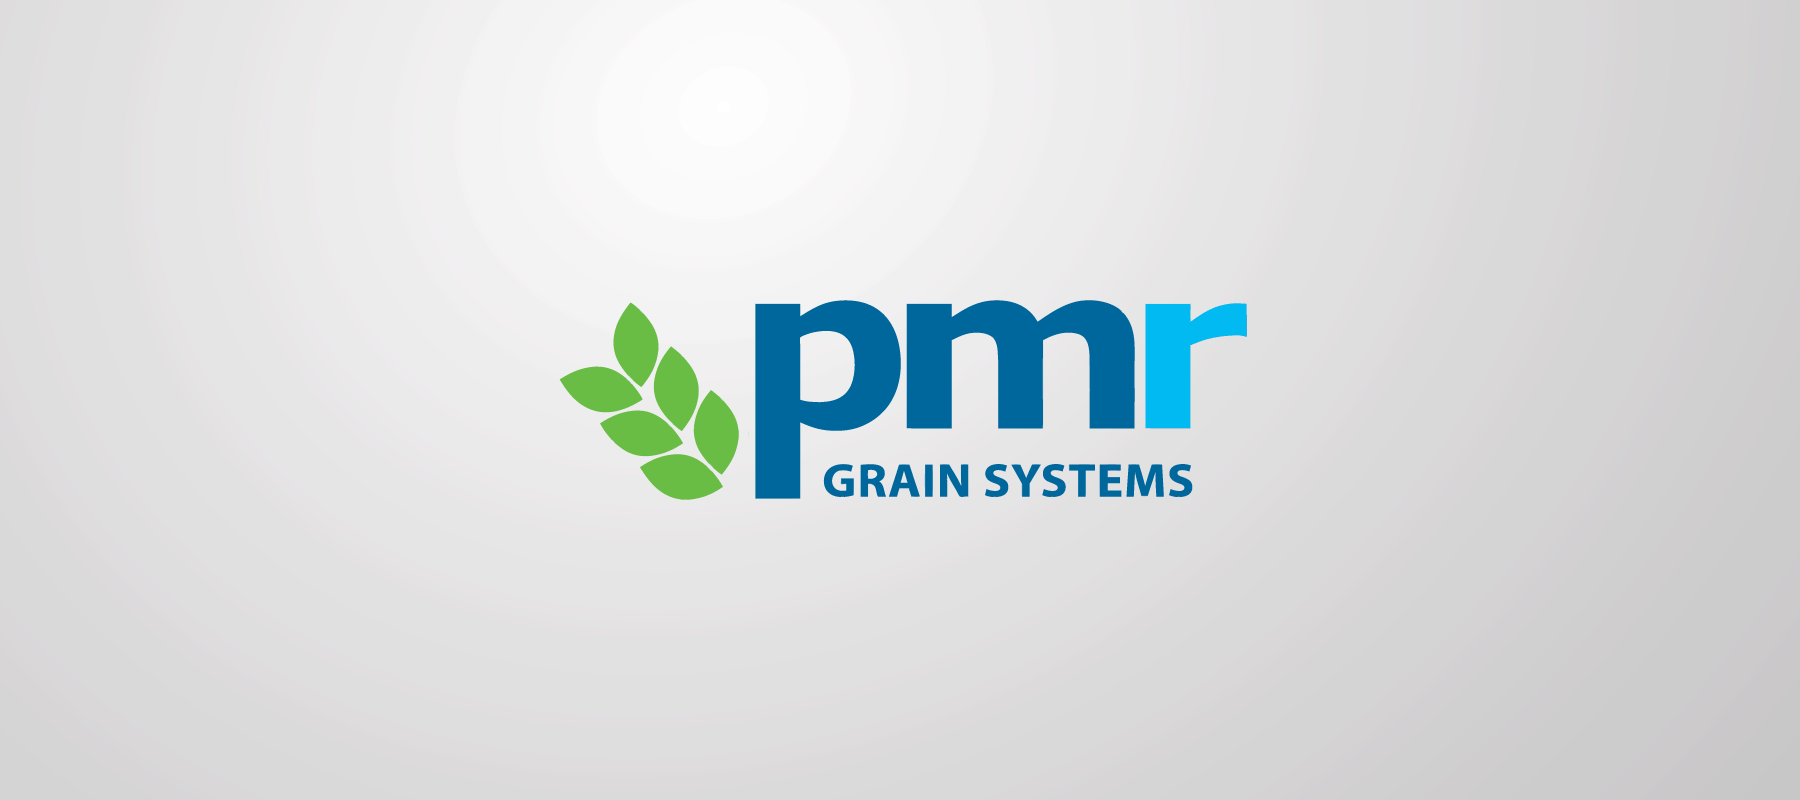 pmr grain systems